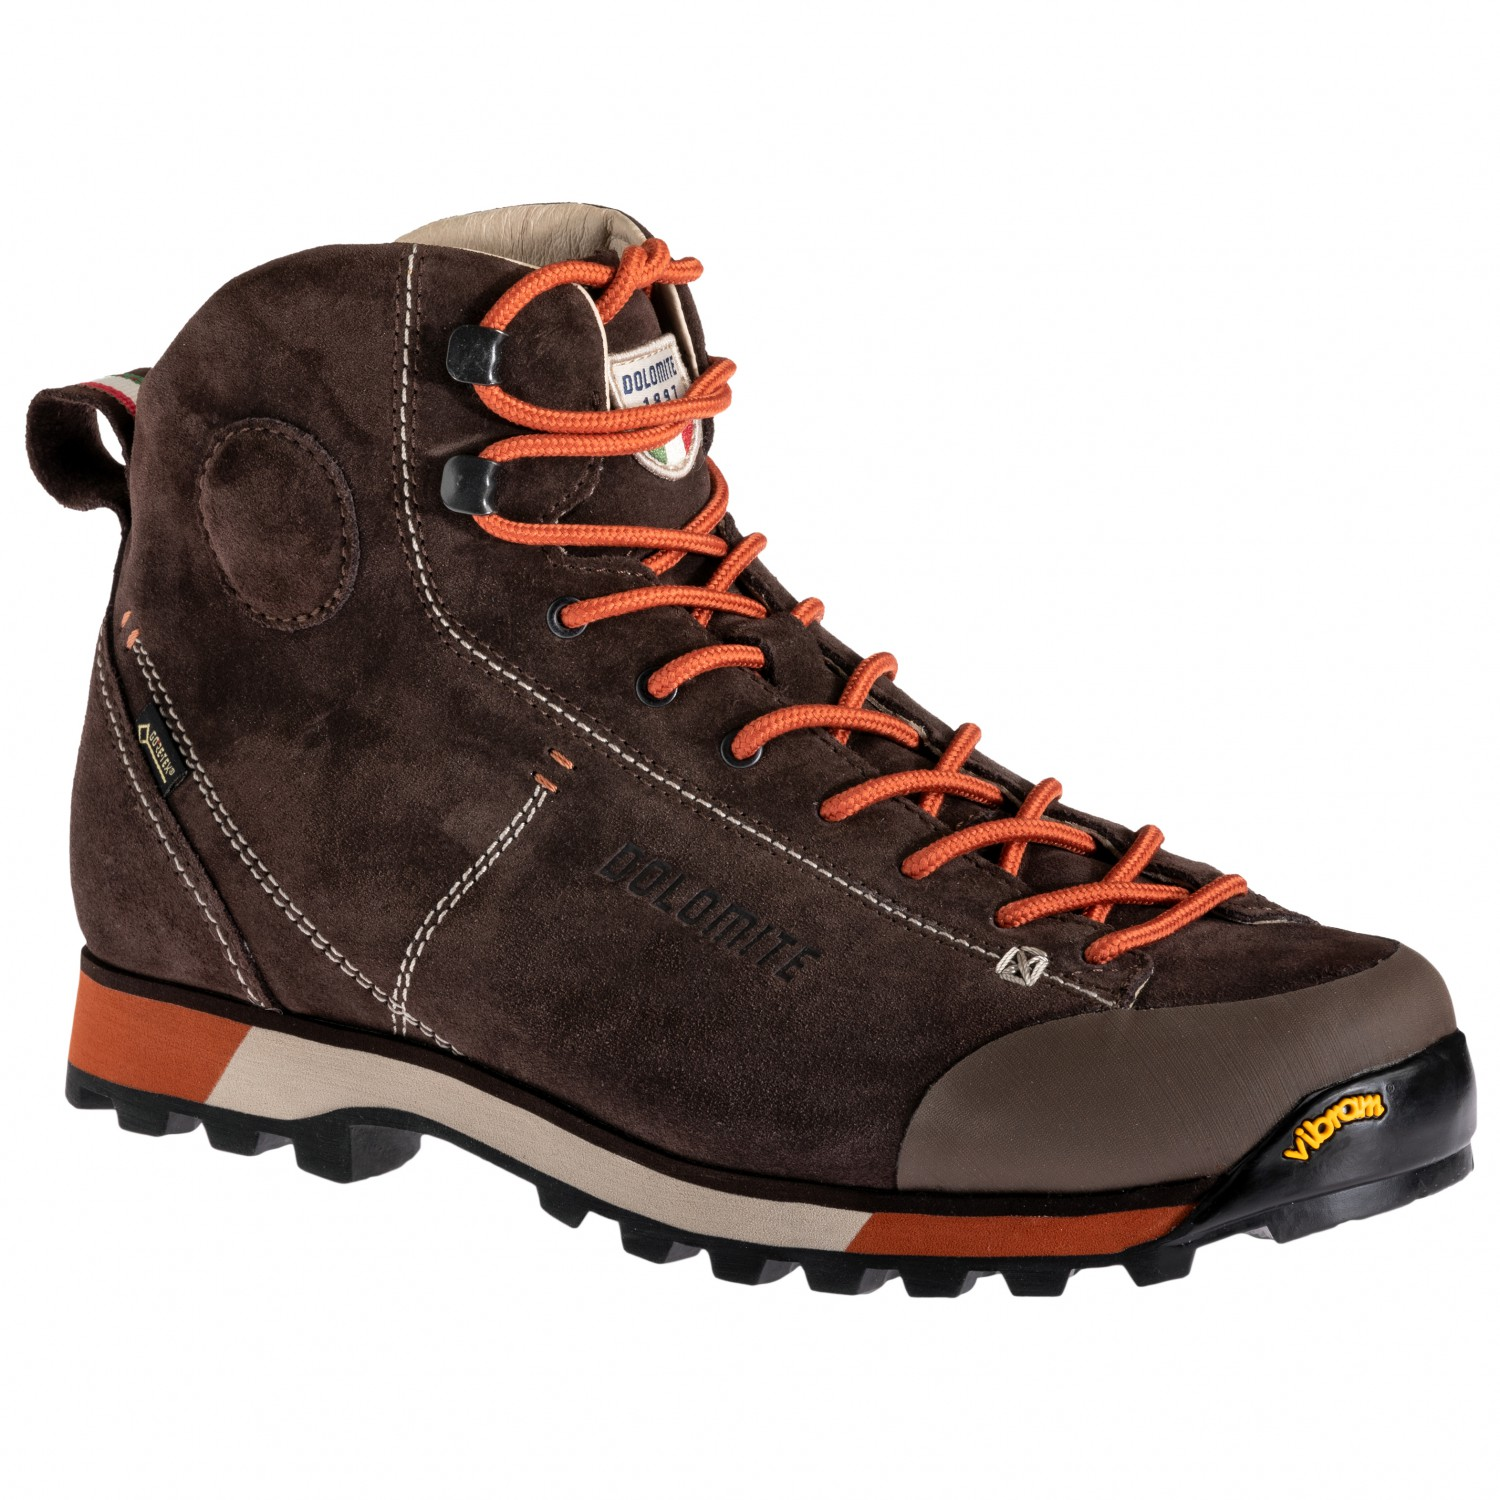 438a8cde037 Dolomite - Cinquantaquattro Hike GTX - Walking boots - Dark Brown / Red |  7,5 (UK)